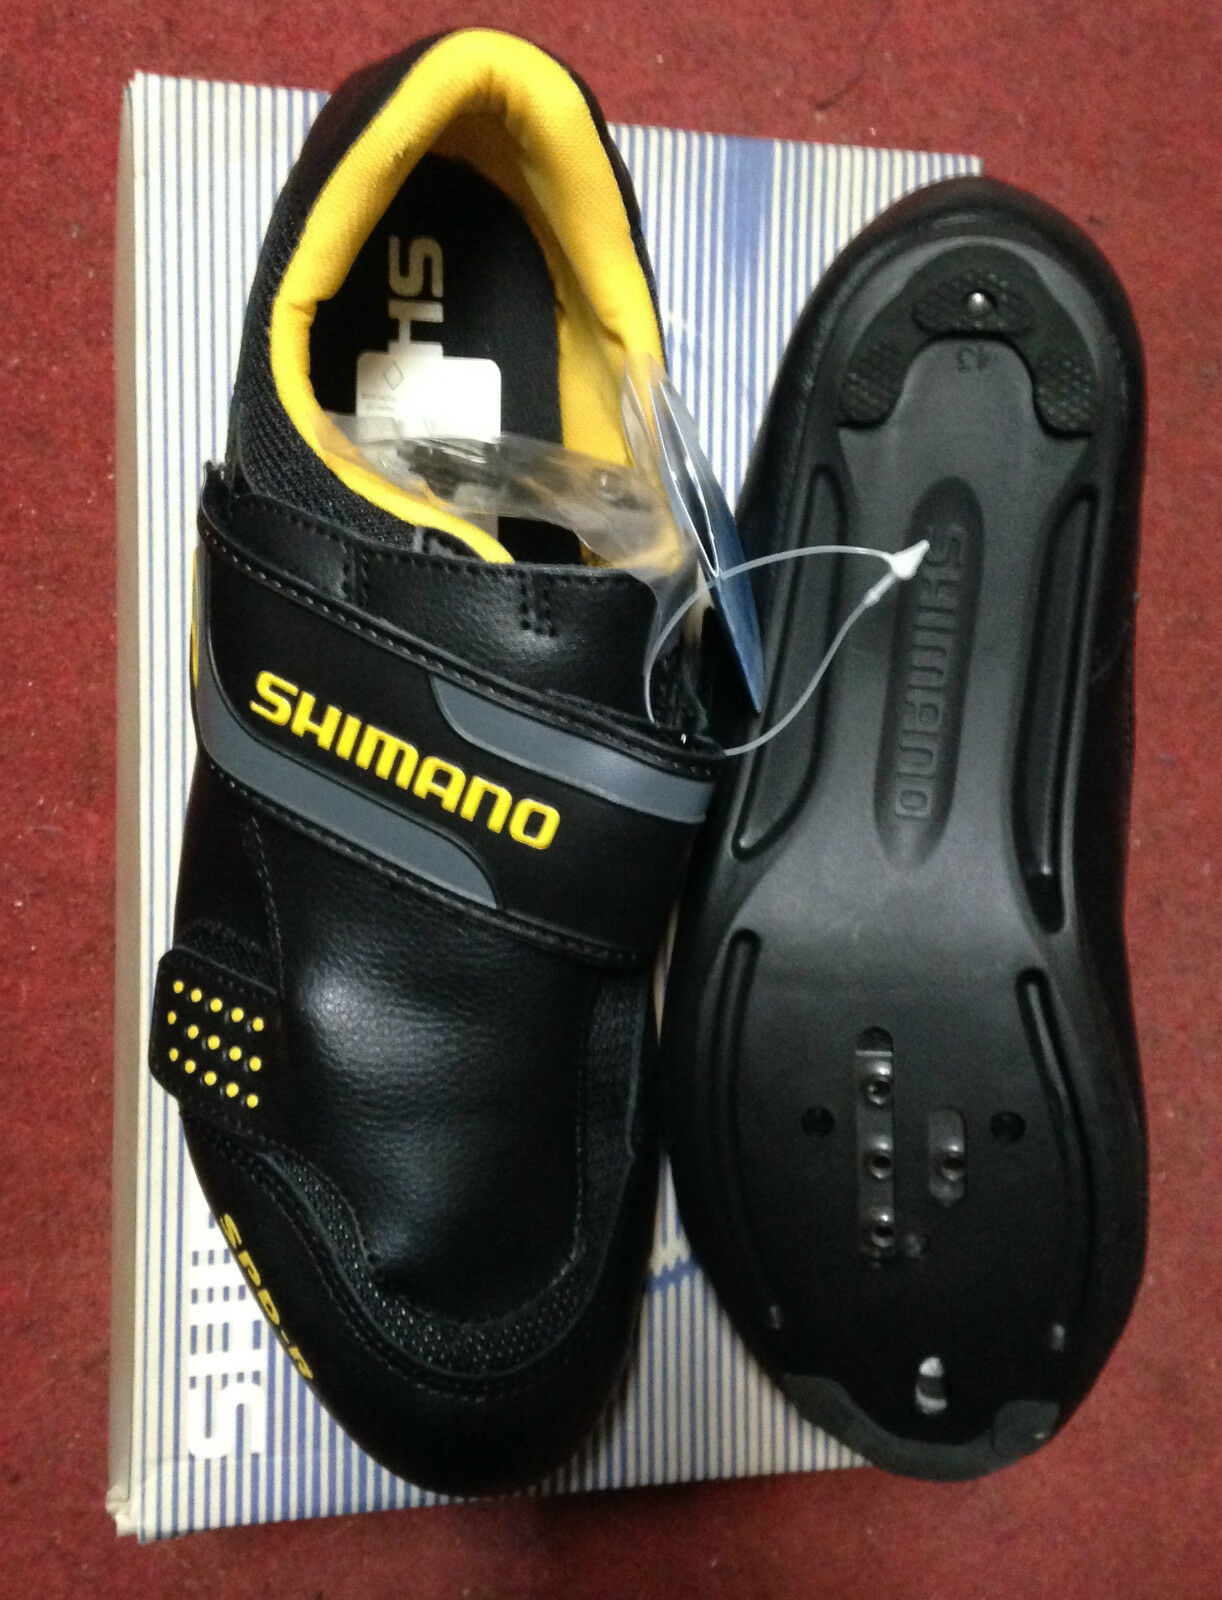 zapatos bici corsa Shimano SH-R072 racing road bike zapatos 37 38 39 40 43 46